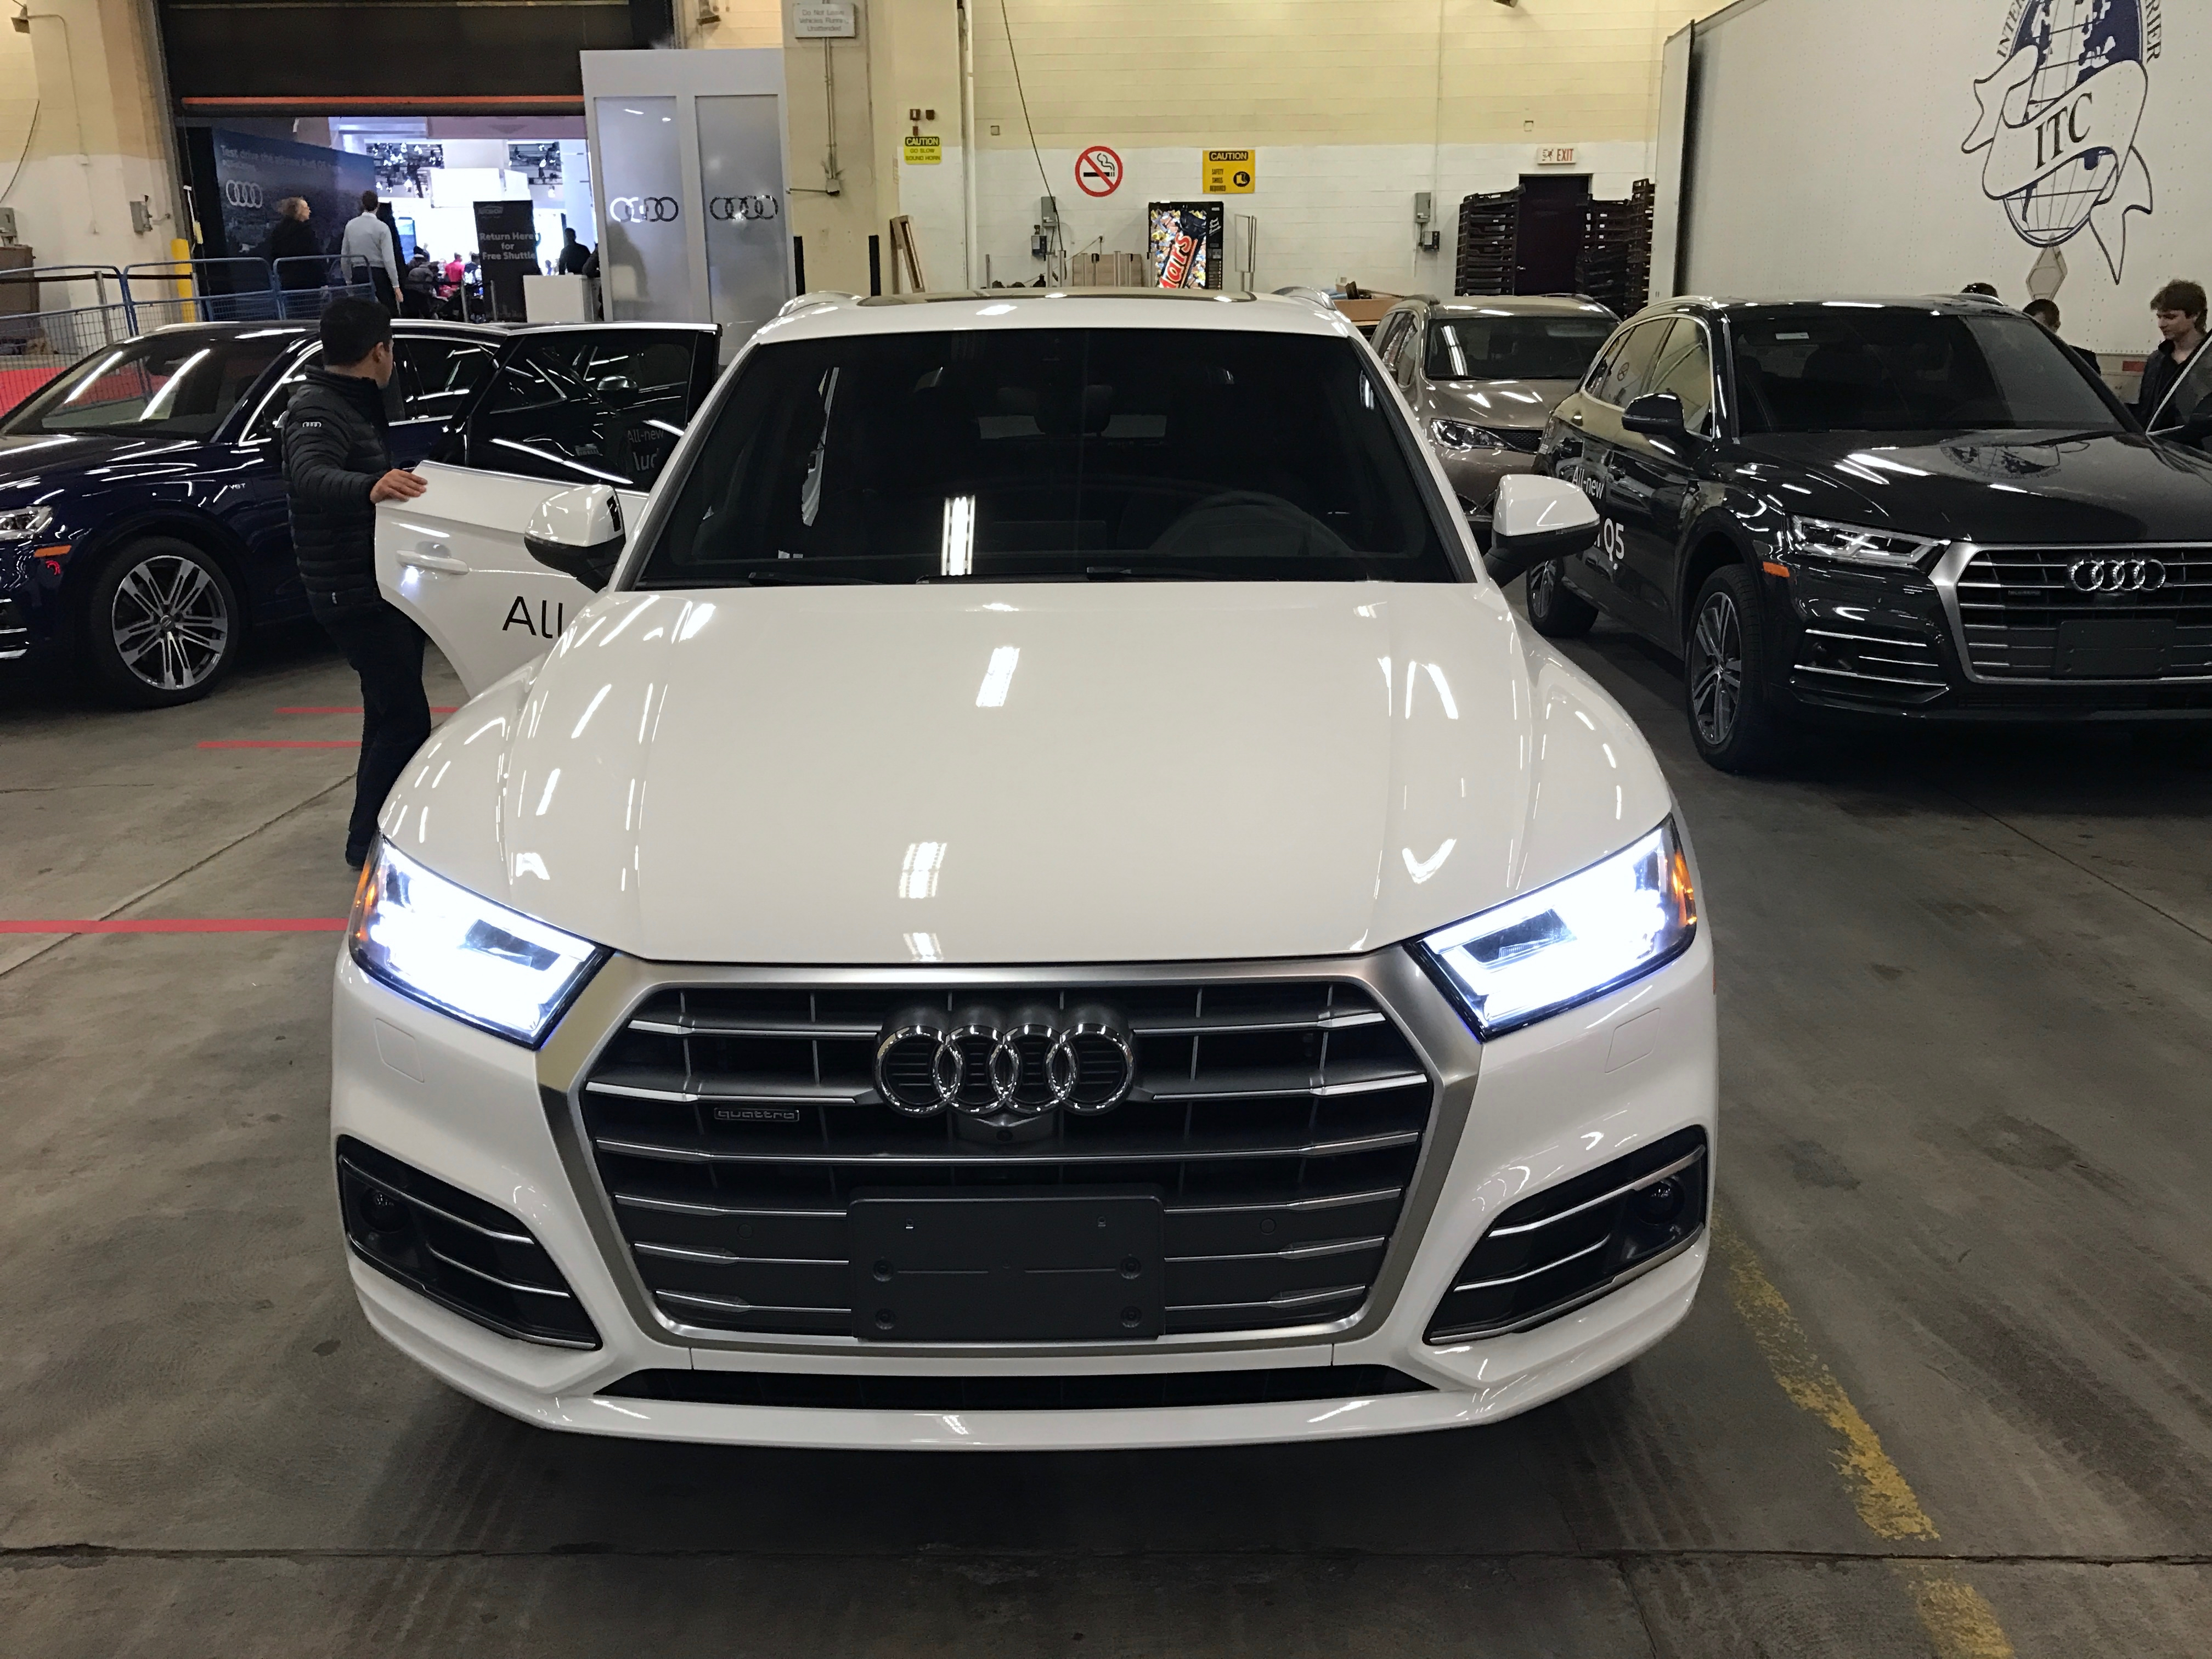 models audi video solid videos suv around an is roadshow still all